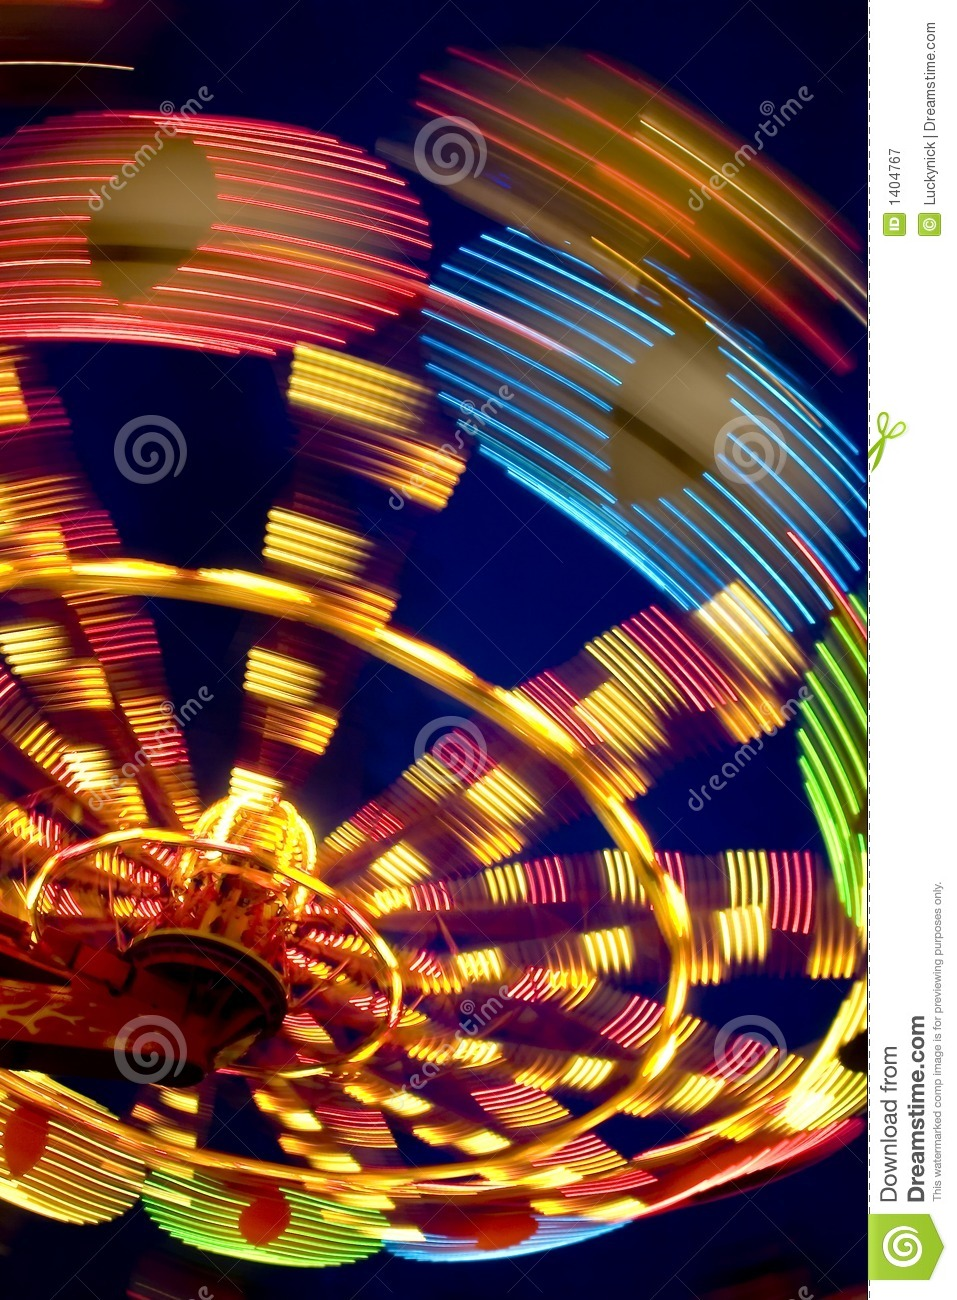 Download Wheel in motion stock image. Image of blue, light, giant - 1404767